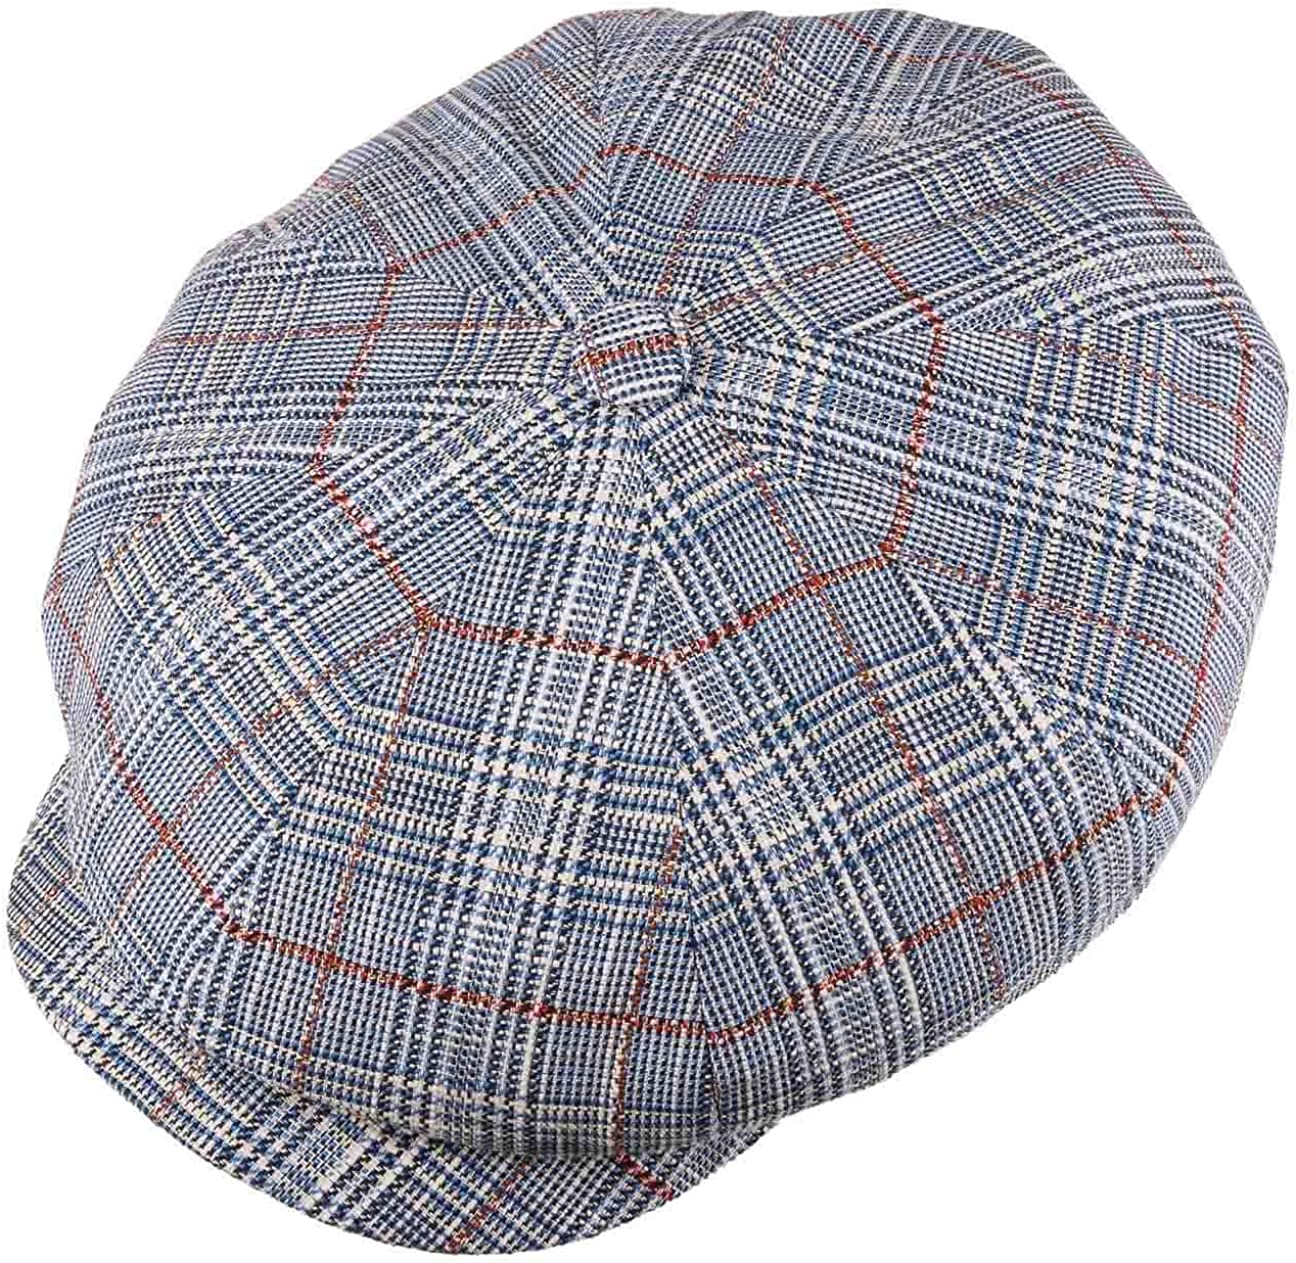 1940s Mens Hats | Fedora, Homburg, Pork Pie Hats Stetson Hatteras Classic Check Flat Cap Men - Made in The EU $92.37 AT vintagedancer.com